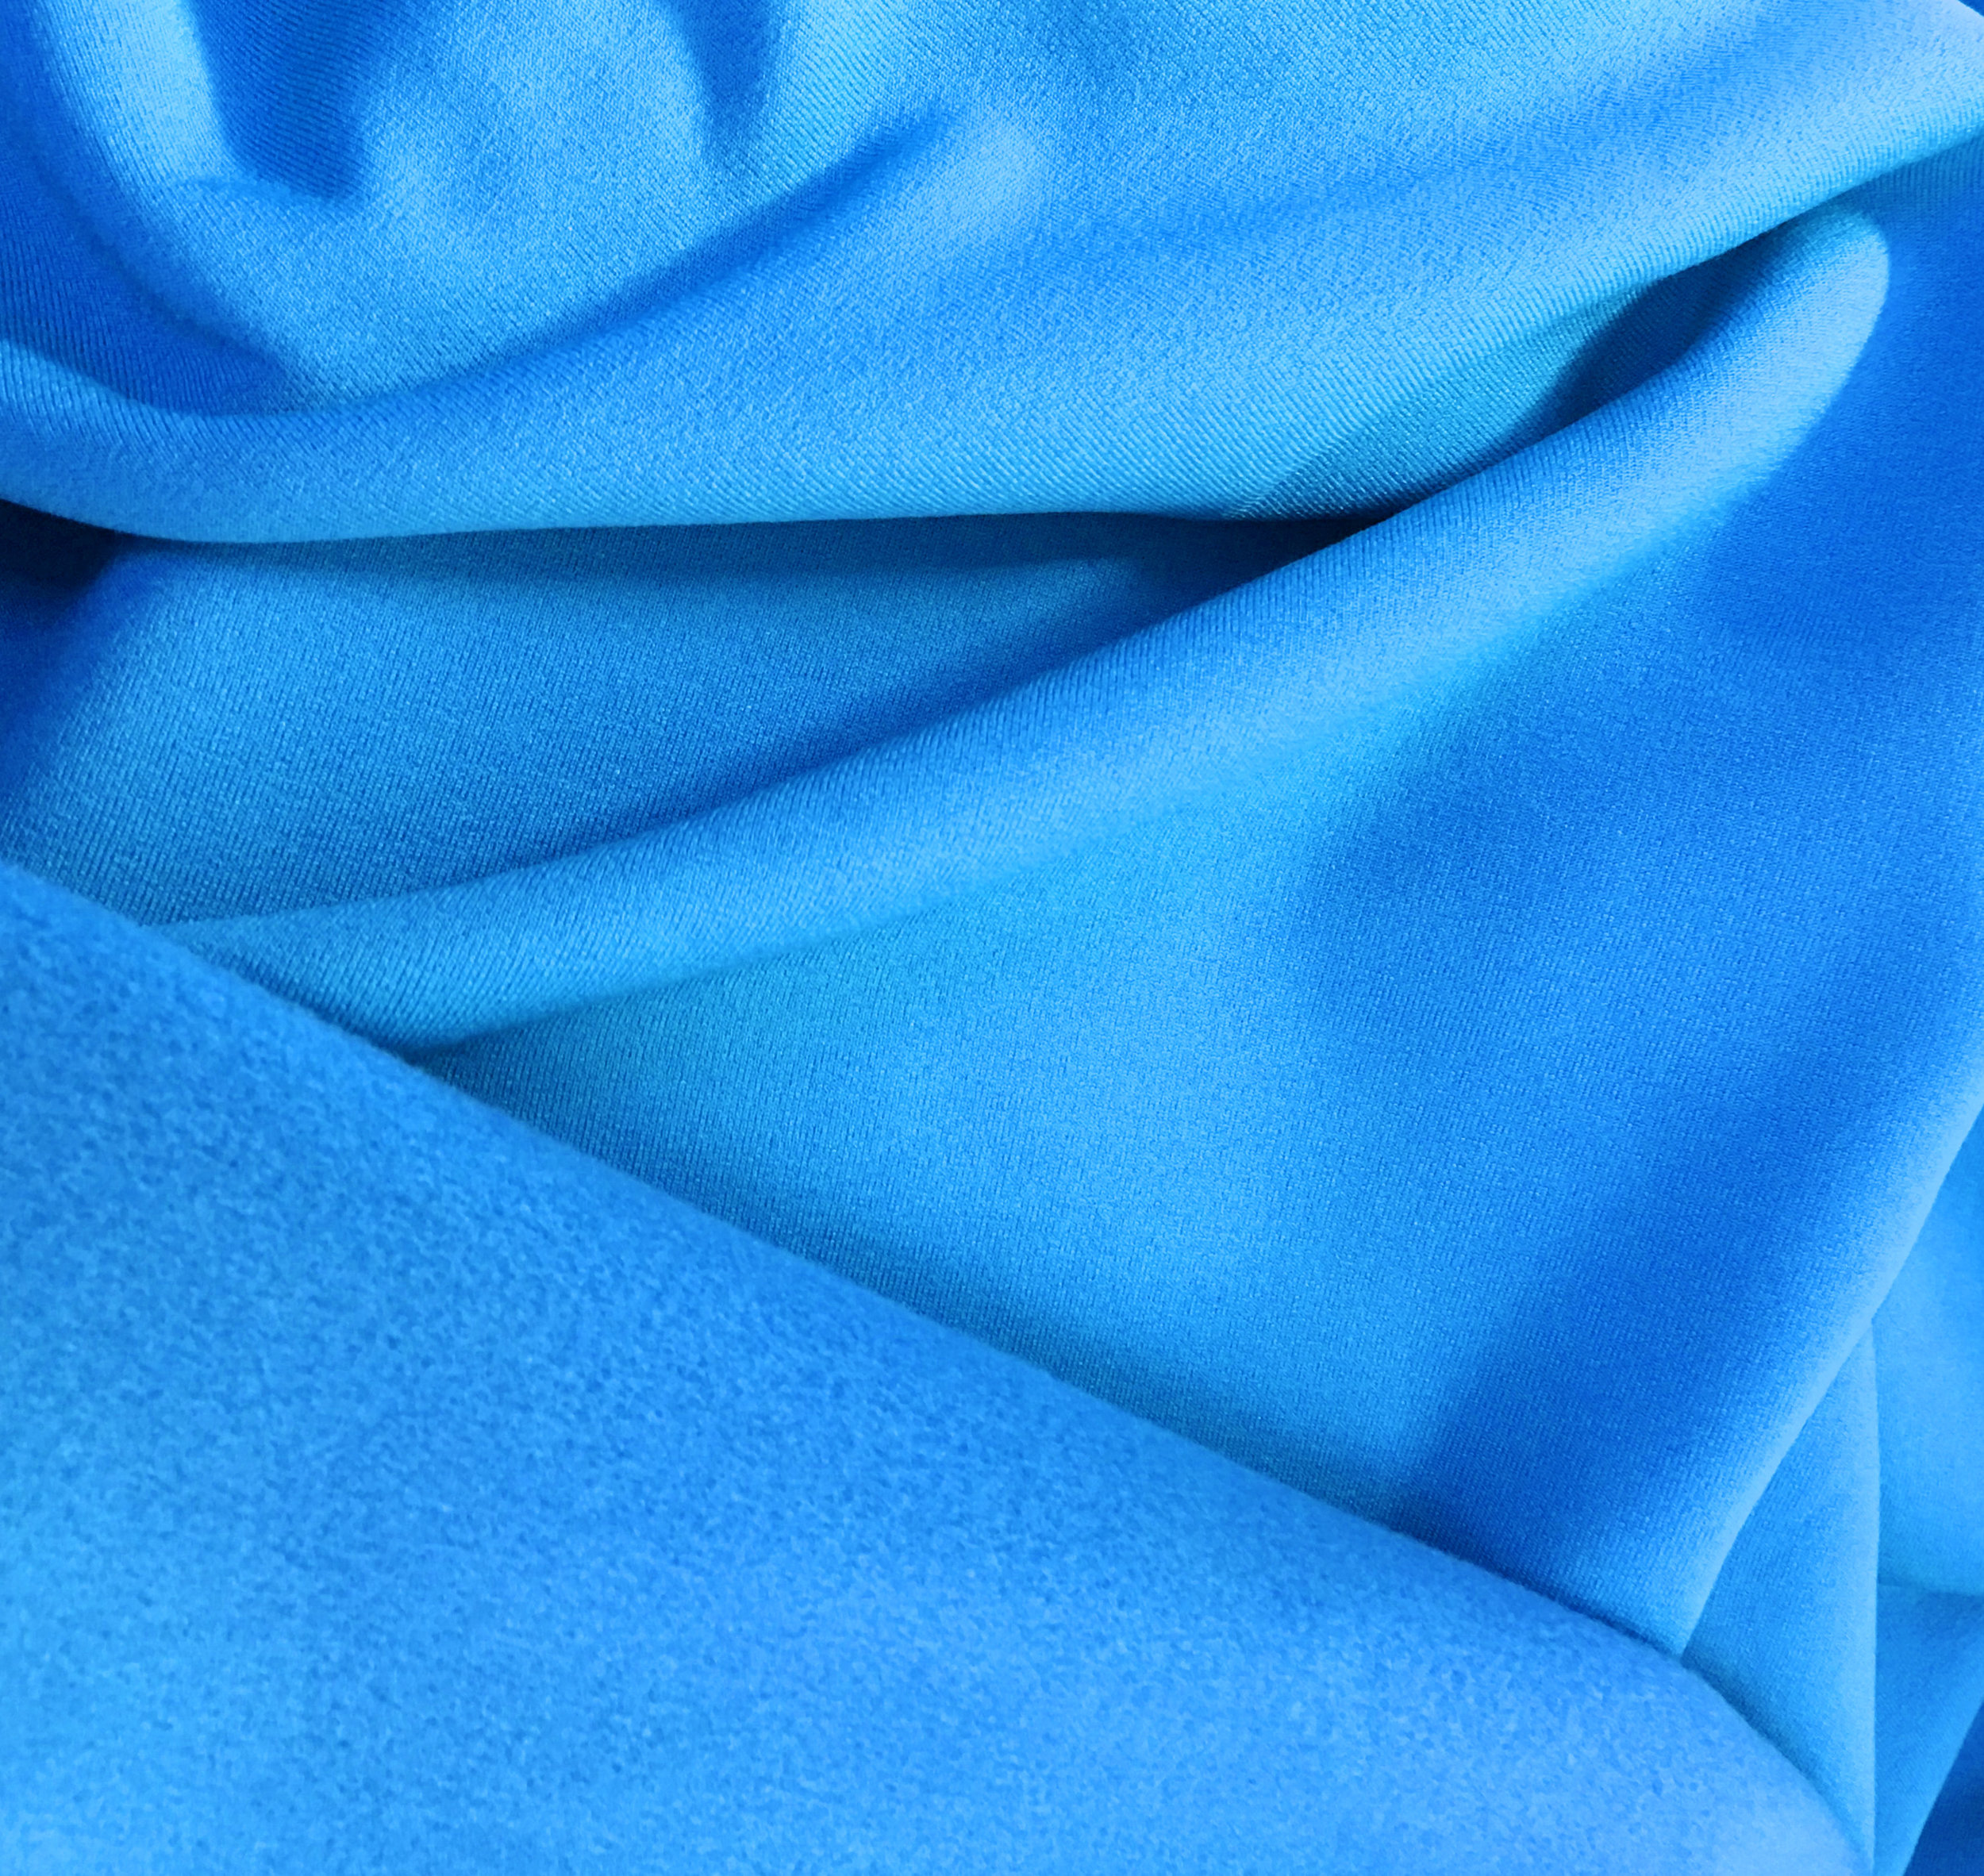 POWER CORE FABRIC - Our famous POWER CORE FABRIC is the most popular Winter Woolies fabric. It's an insulating, 4-way stretch fabric that warms to your body temperature. The inside is a highly brushed layer of coziness and the outside is a sleek matte finish. This fabric provides optimum comfort and excellent body-hugging warmth. It's breathable and antibacterial, has great wicking qualities and optimum retention and recovery for no bag, no sag fit!